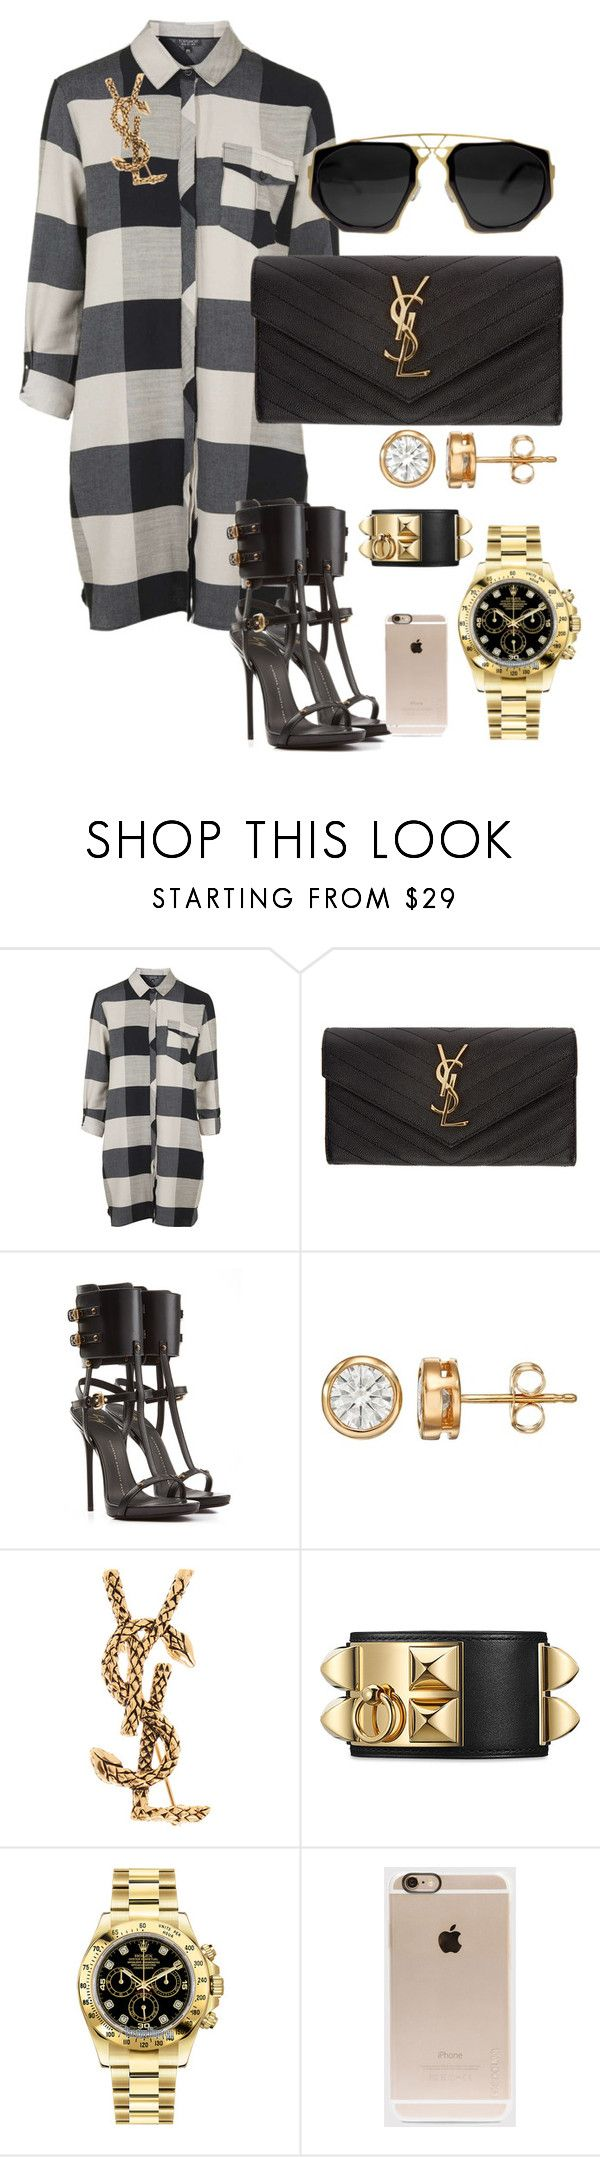 """""""Untitled #301"""" by scannedbyaaron ❤ liked on Polyvore featuring Topshop, Yves Saint Laurent, Giuseppe Zanotti, Rolex and Incase"""